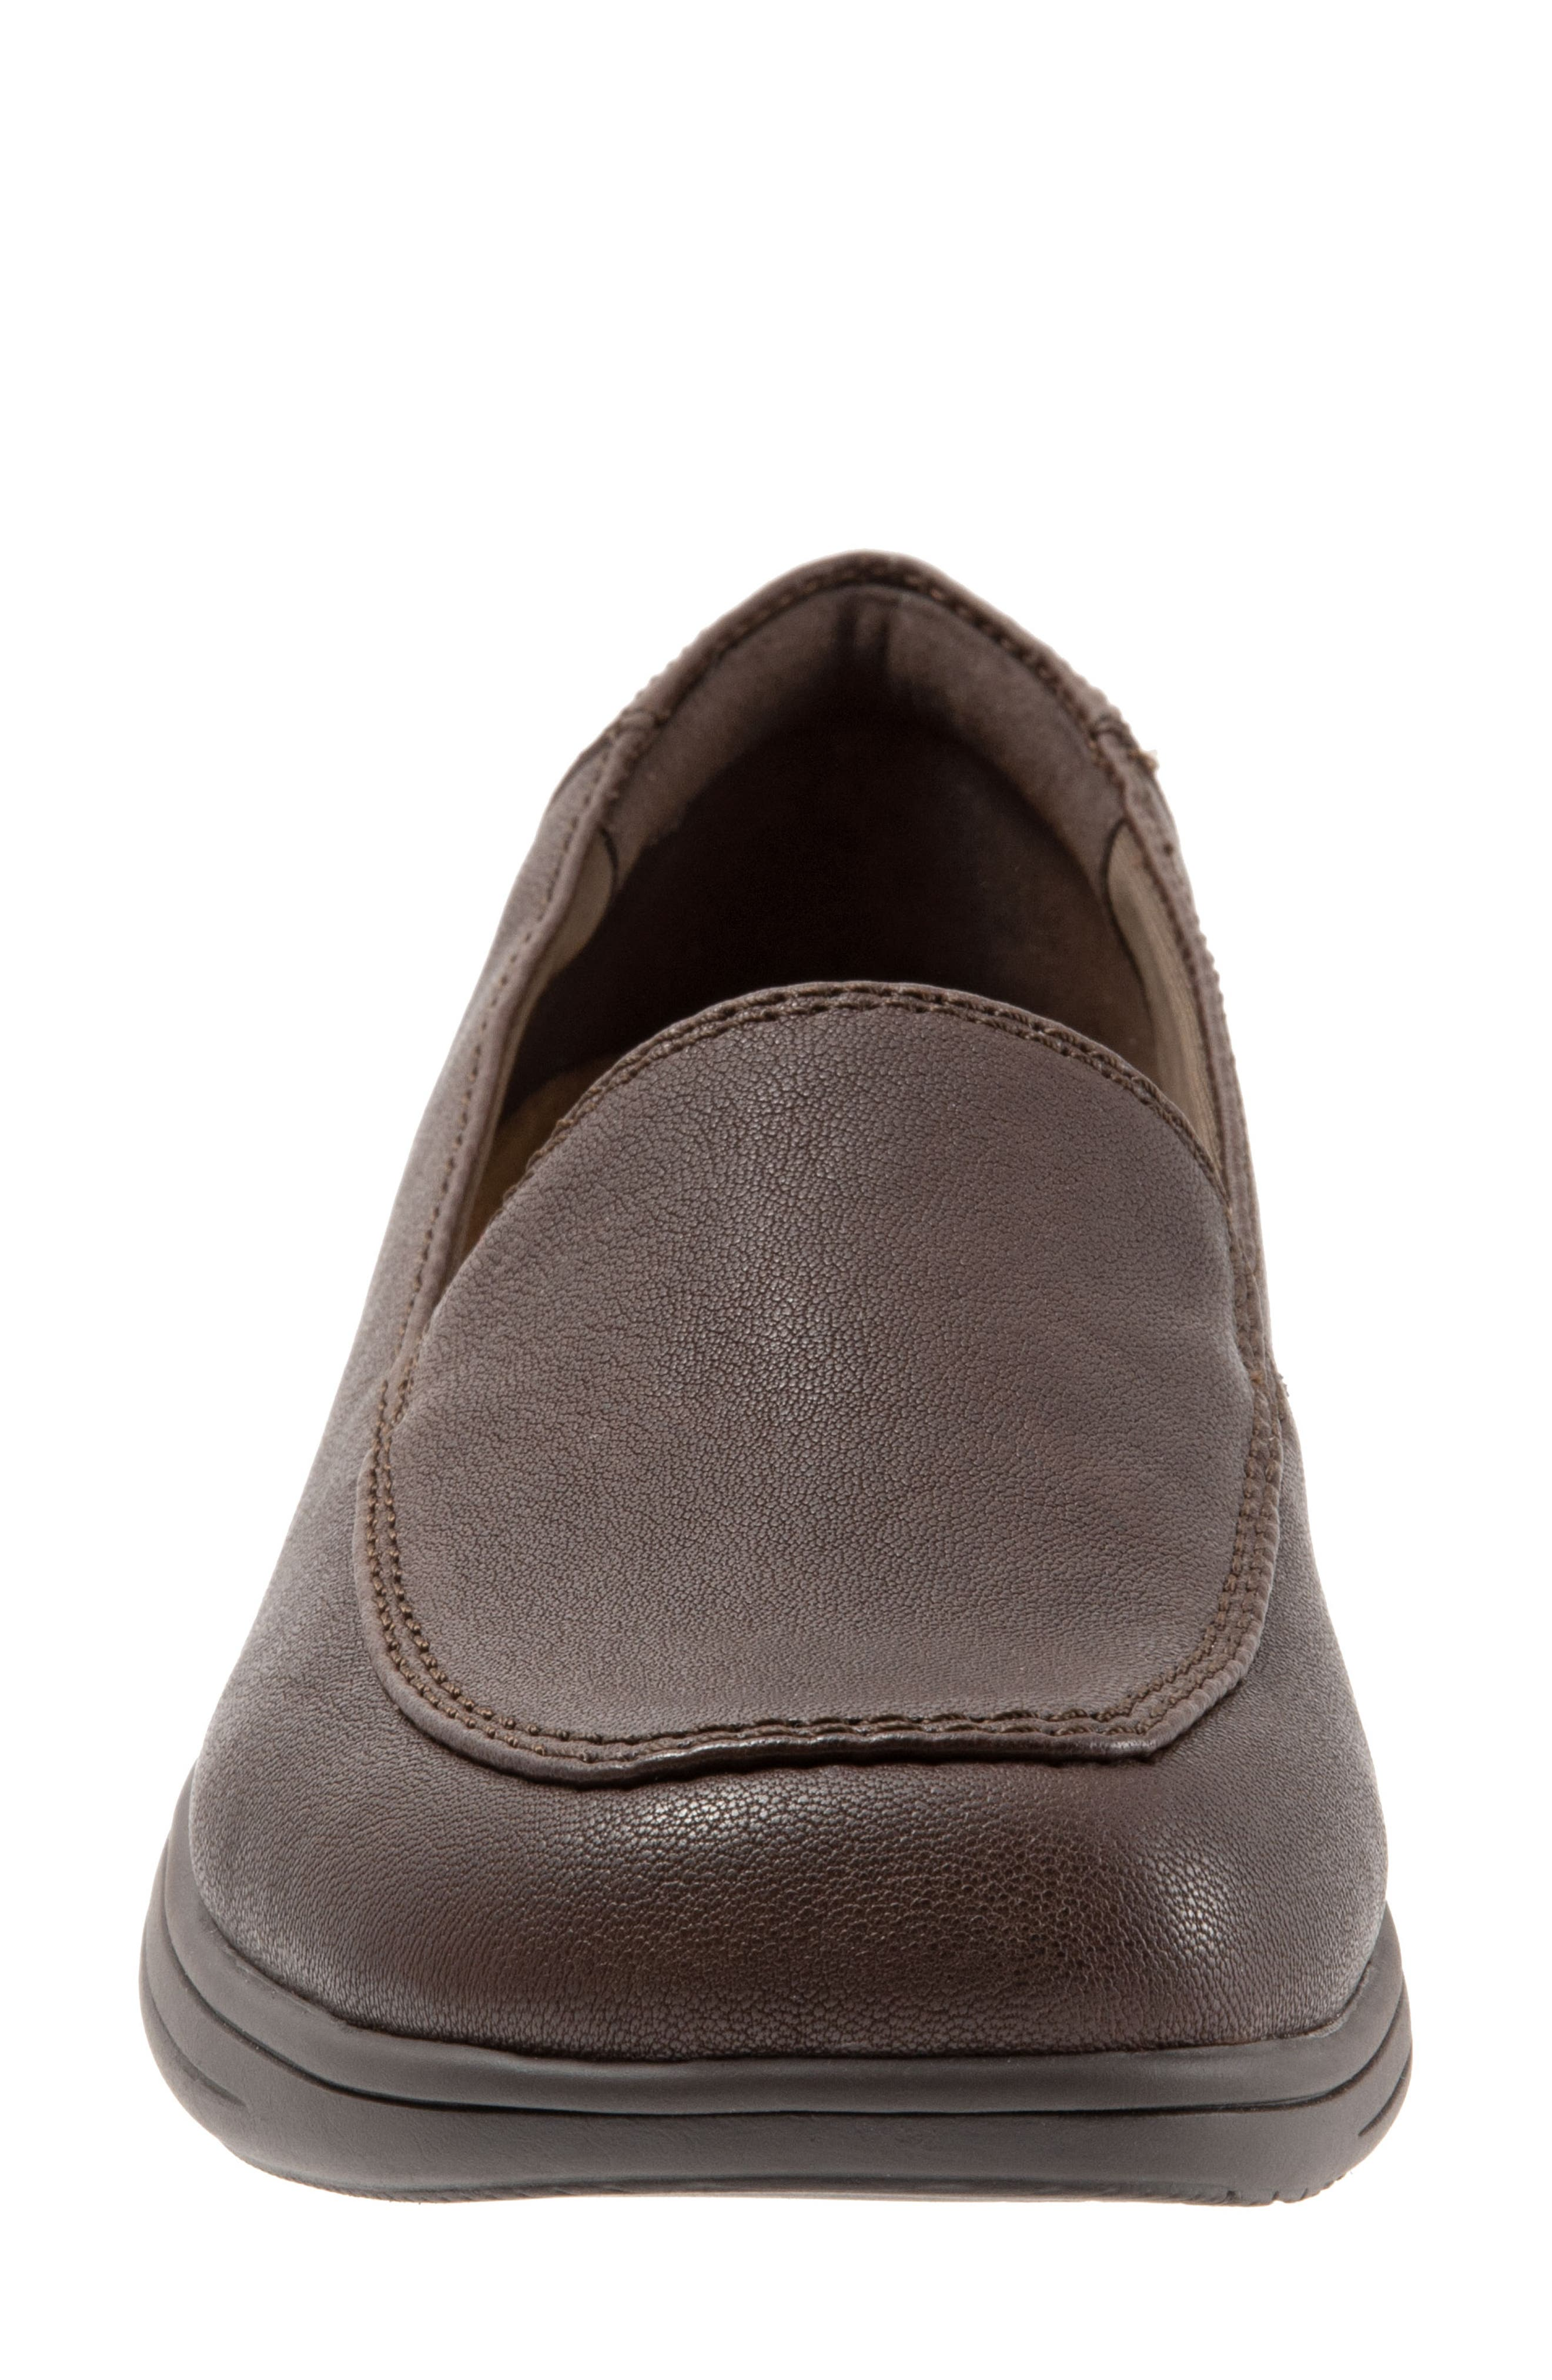 Jacob Loafer,                             Alternate thumbnail 4, color,                             DARK BROWN LEATHER